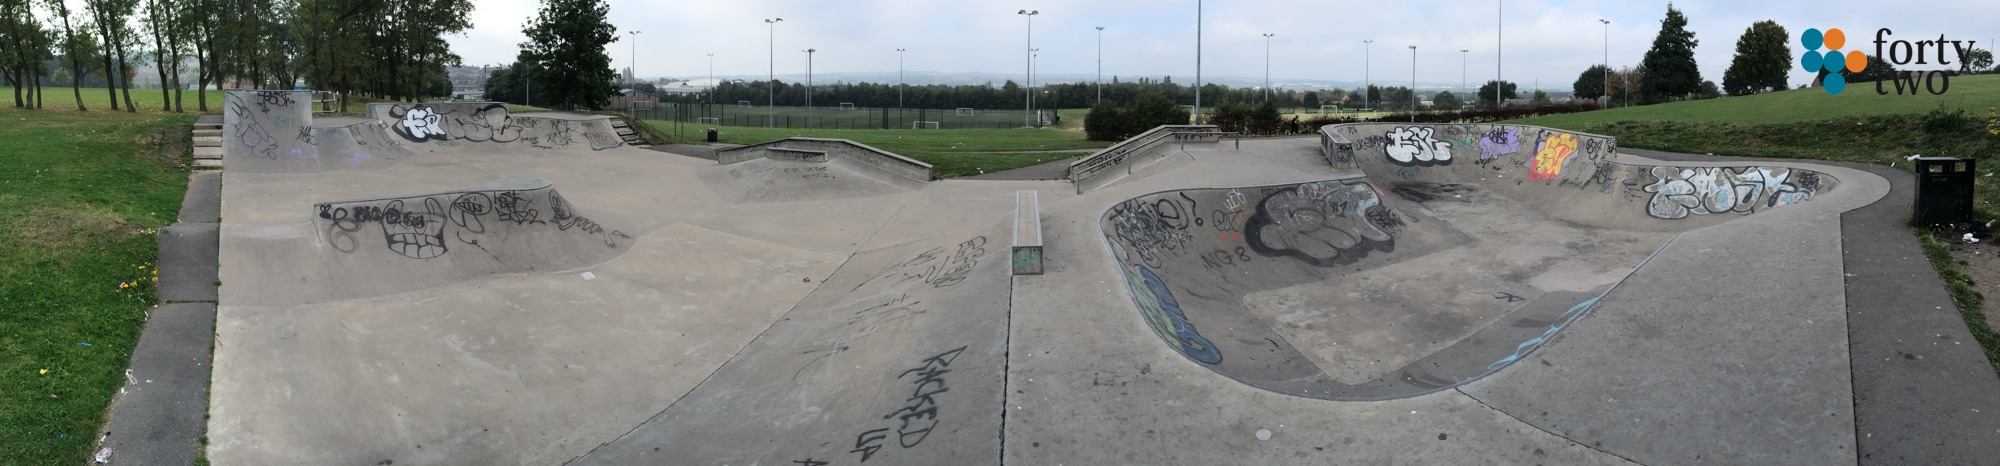 Panoramic view of Southglade skatepark at Southglade leisure centre. View shows the street area.